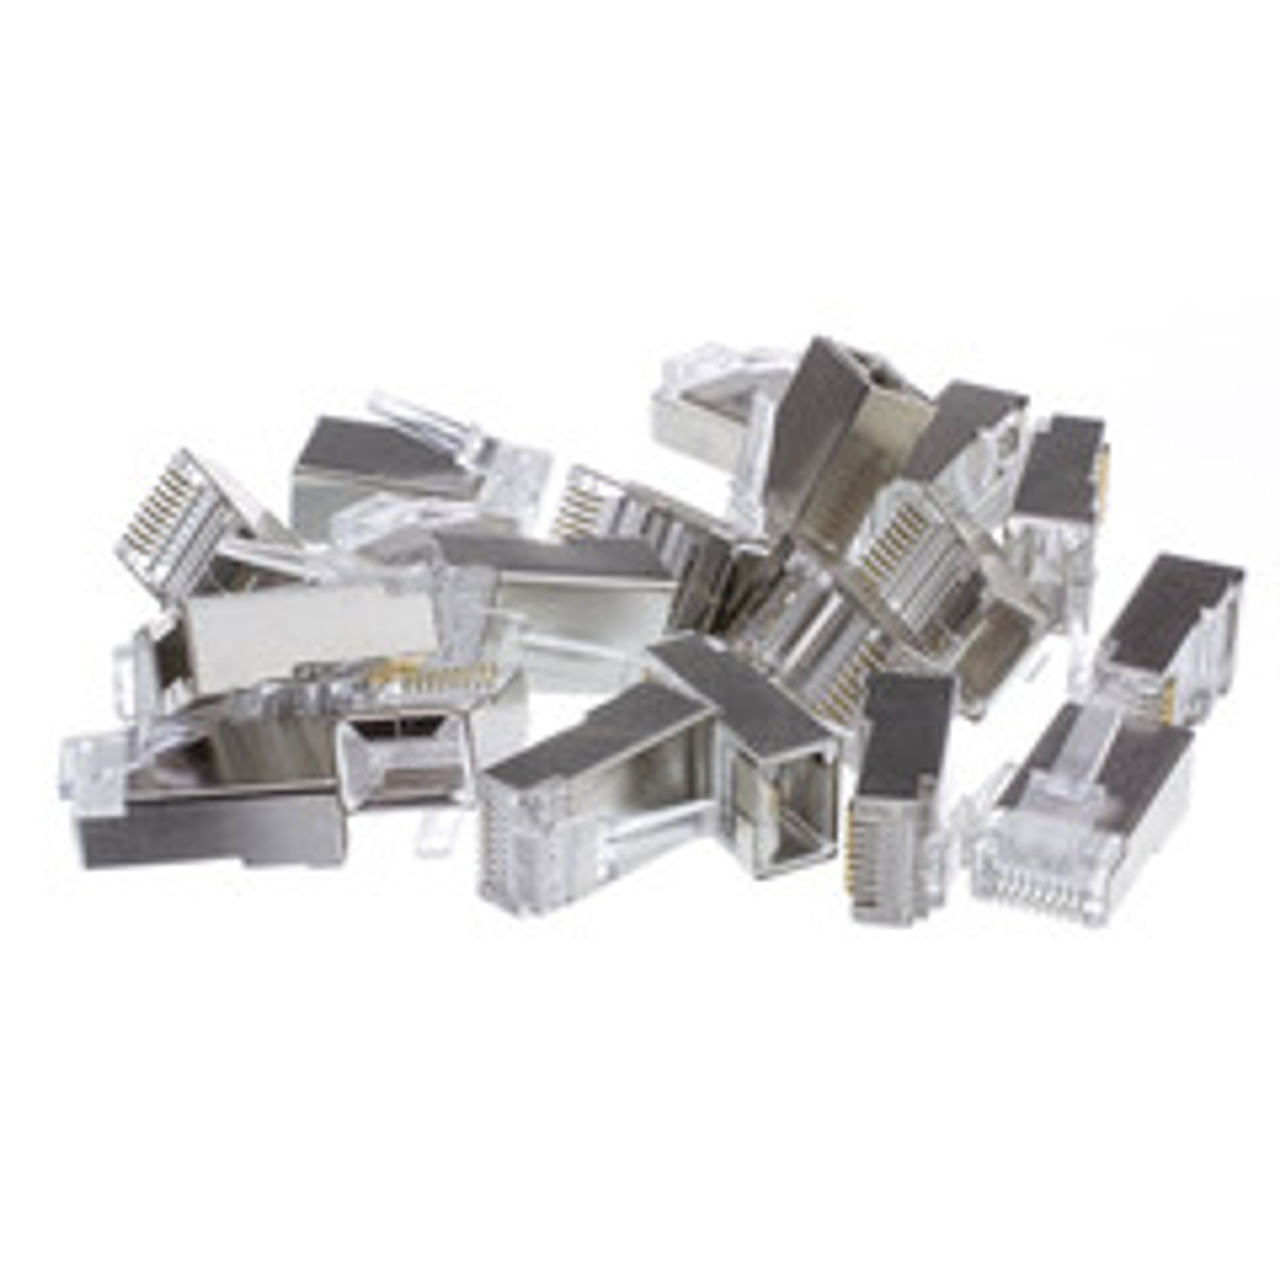 Category 5E RJ45 Modular Shielded Connector 100 Pack